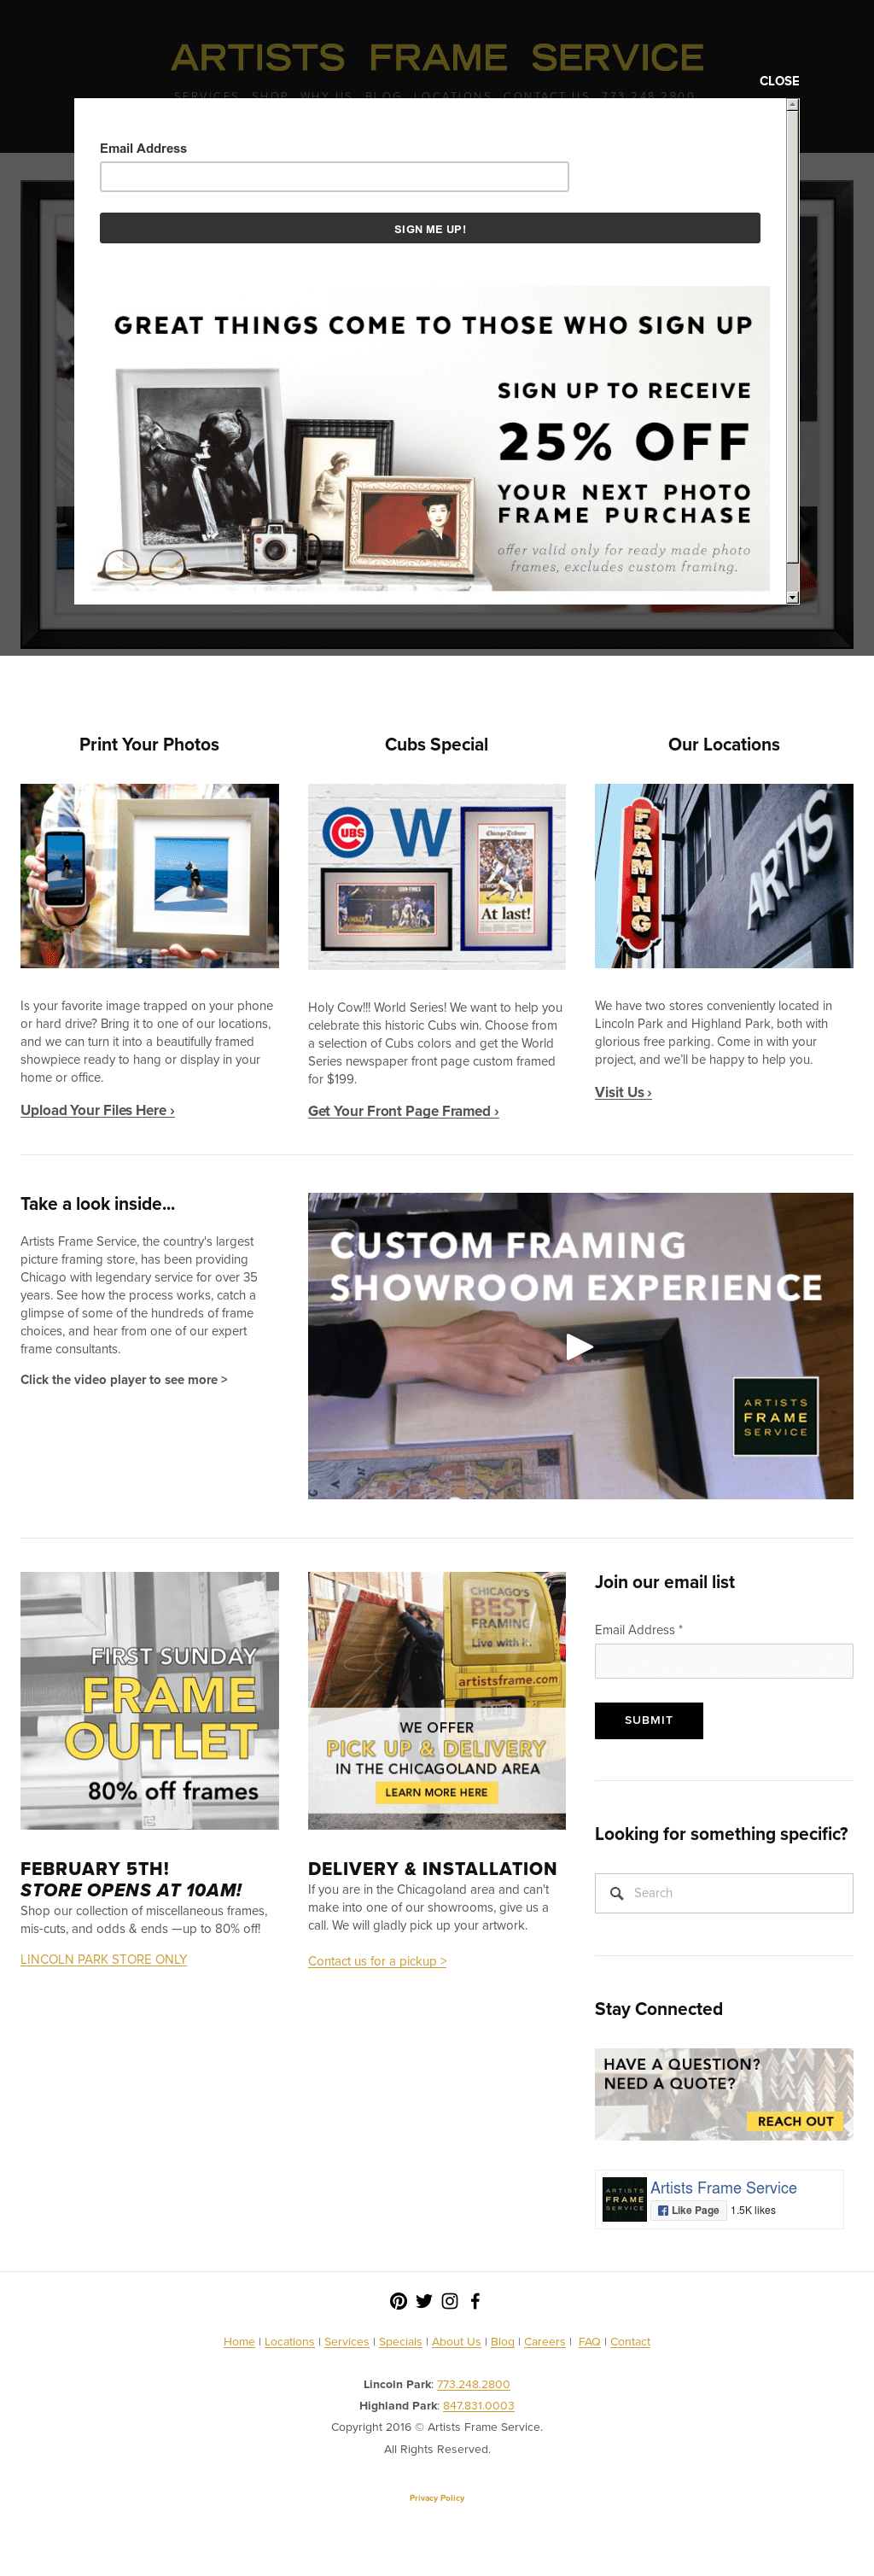 artists frame service chicago | Siteframes.co